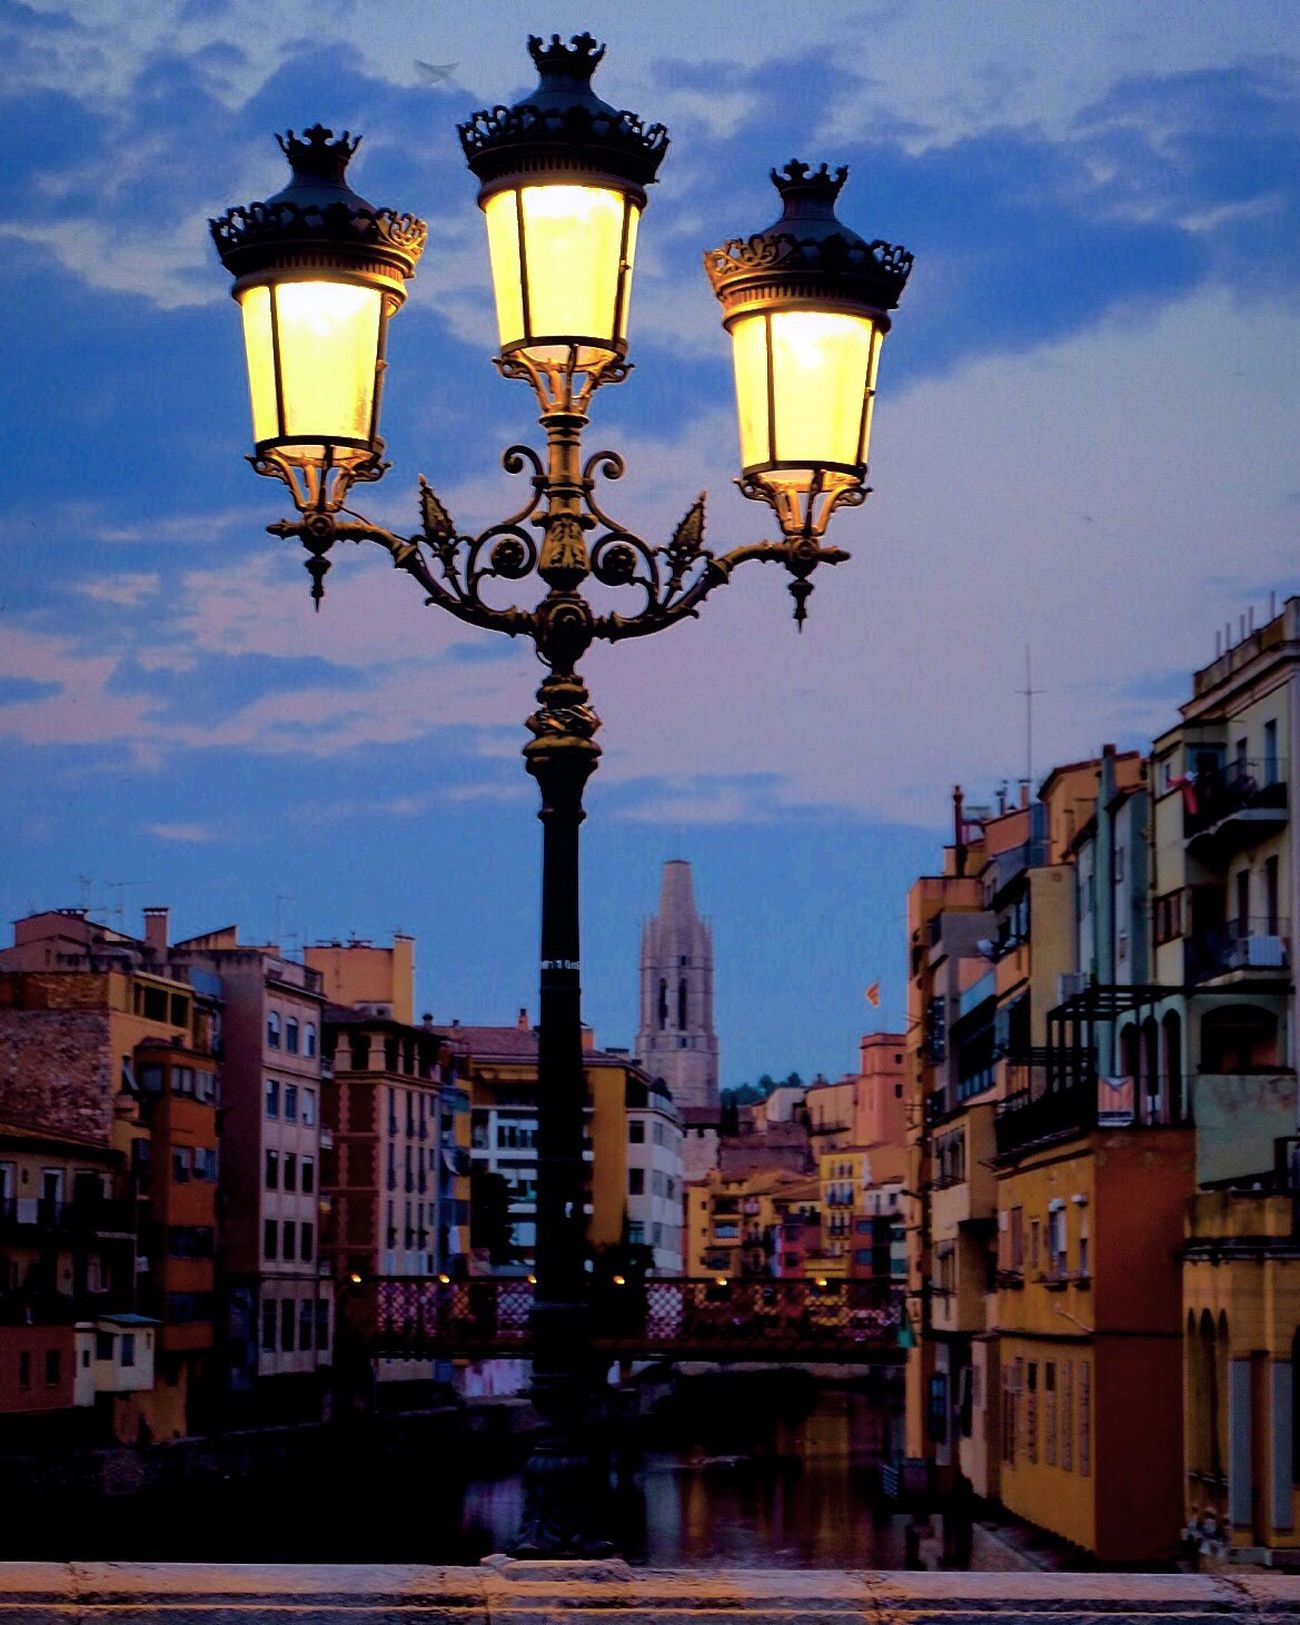 Lighting Equipment Street Light Street Lamp Gas Light Illuminated Architecture Sky Outdoors Building Exterior Electricity  Built Structure No People City Day Fujifilm Myfujifilm Girona Golden Hour